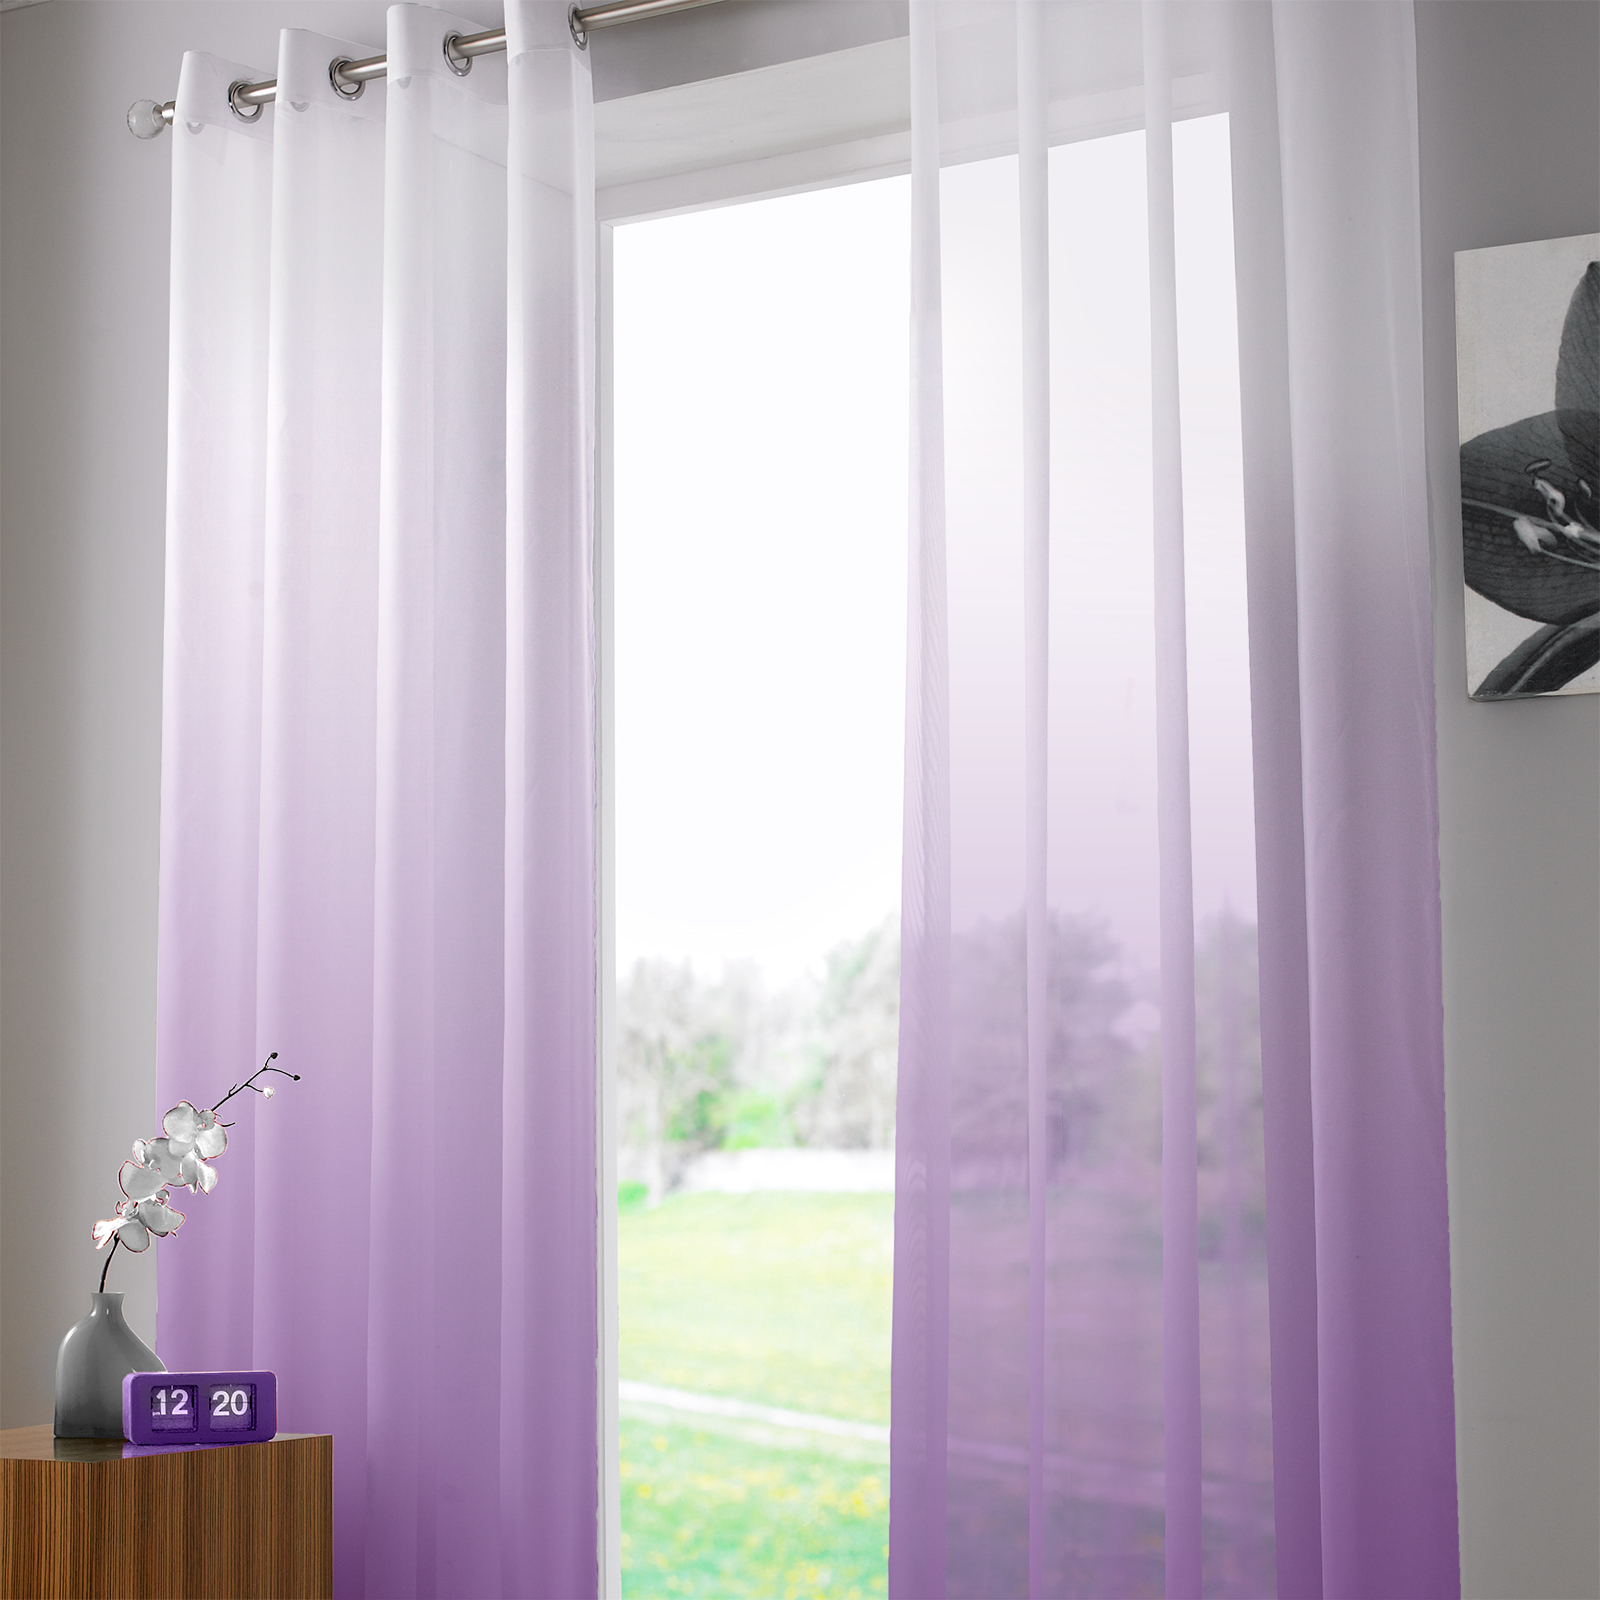 Voile Ombre Two Tone Ombre Ring Top Sheer Voile Curtain Panel 58x90